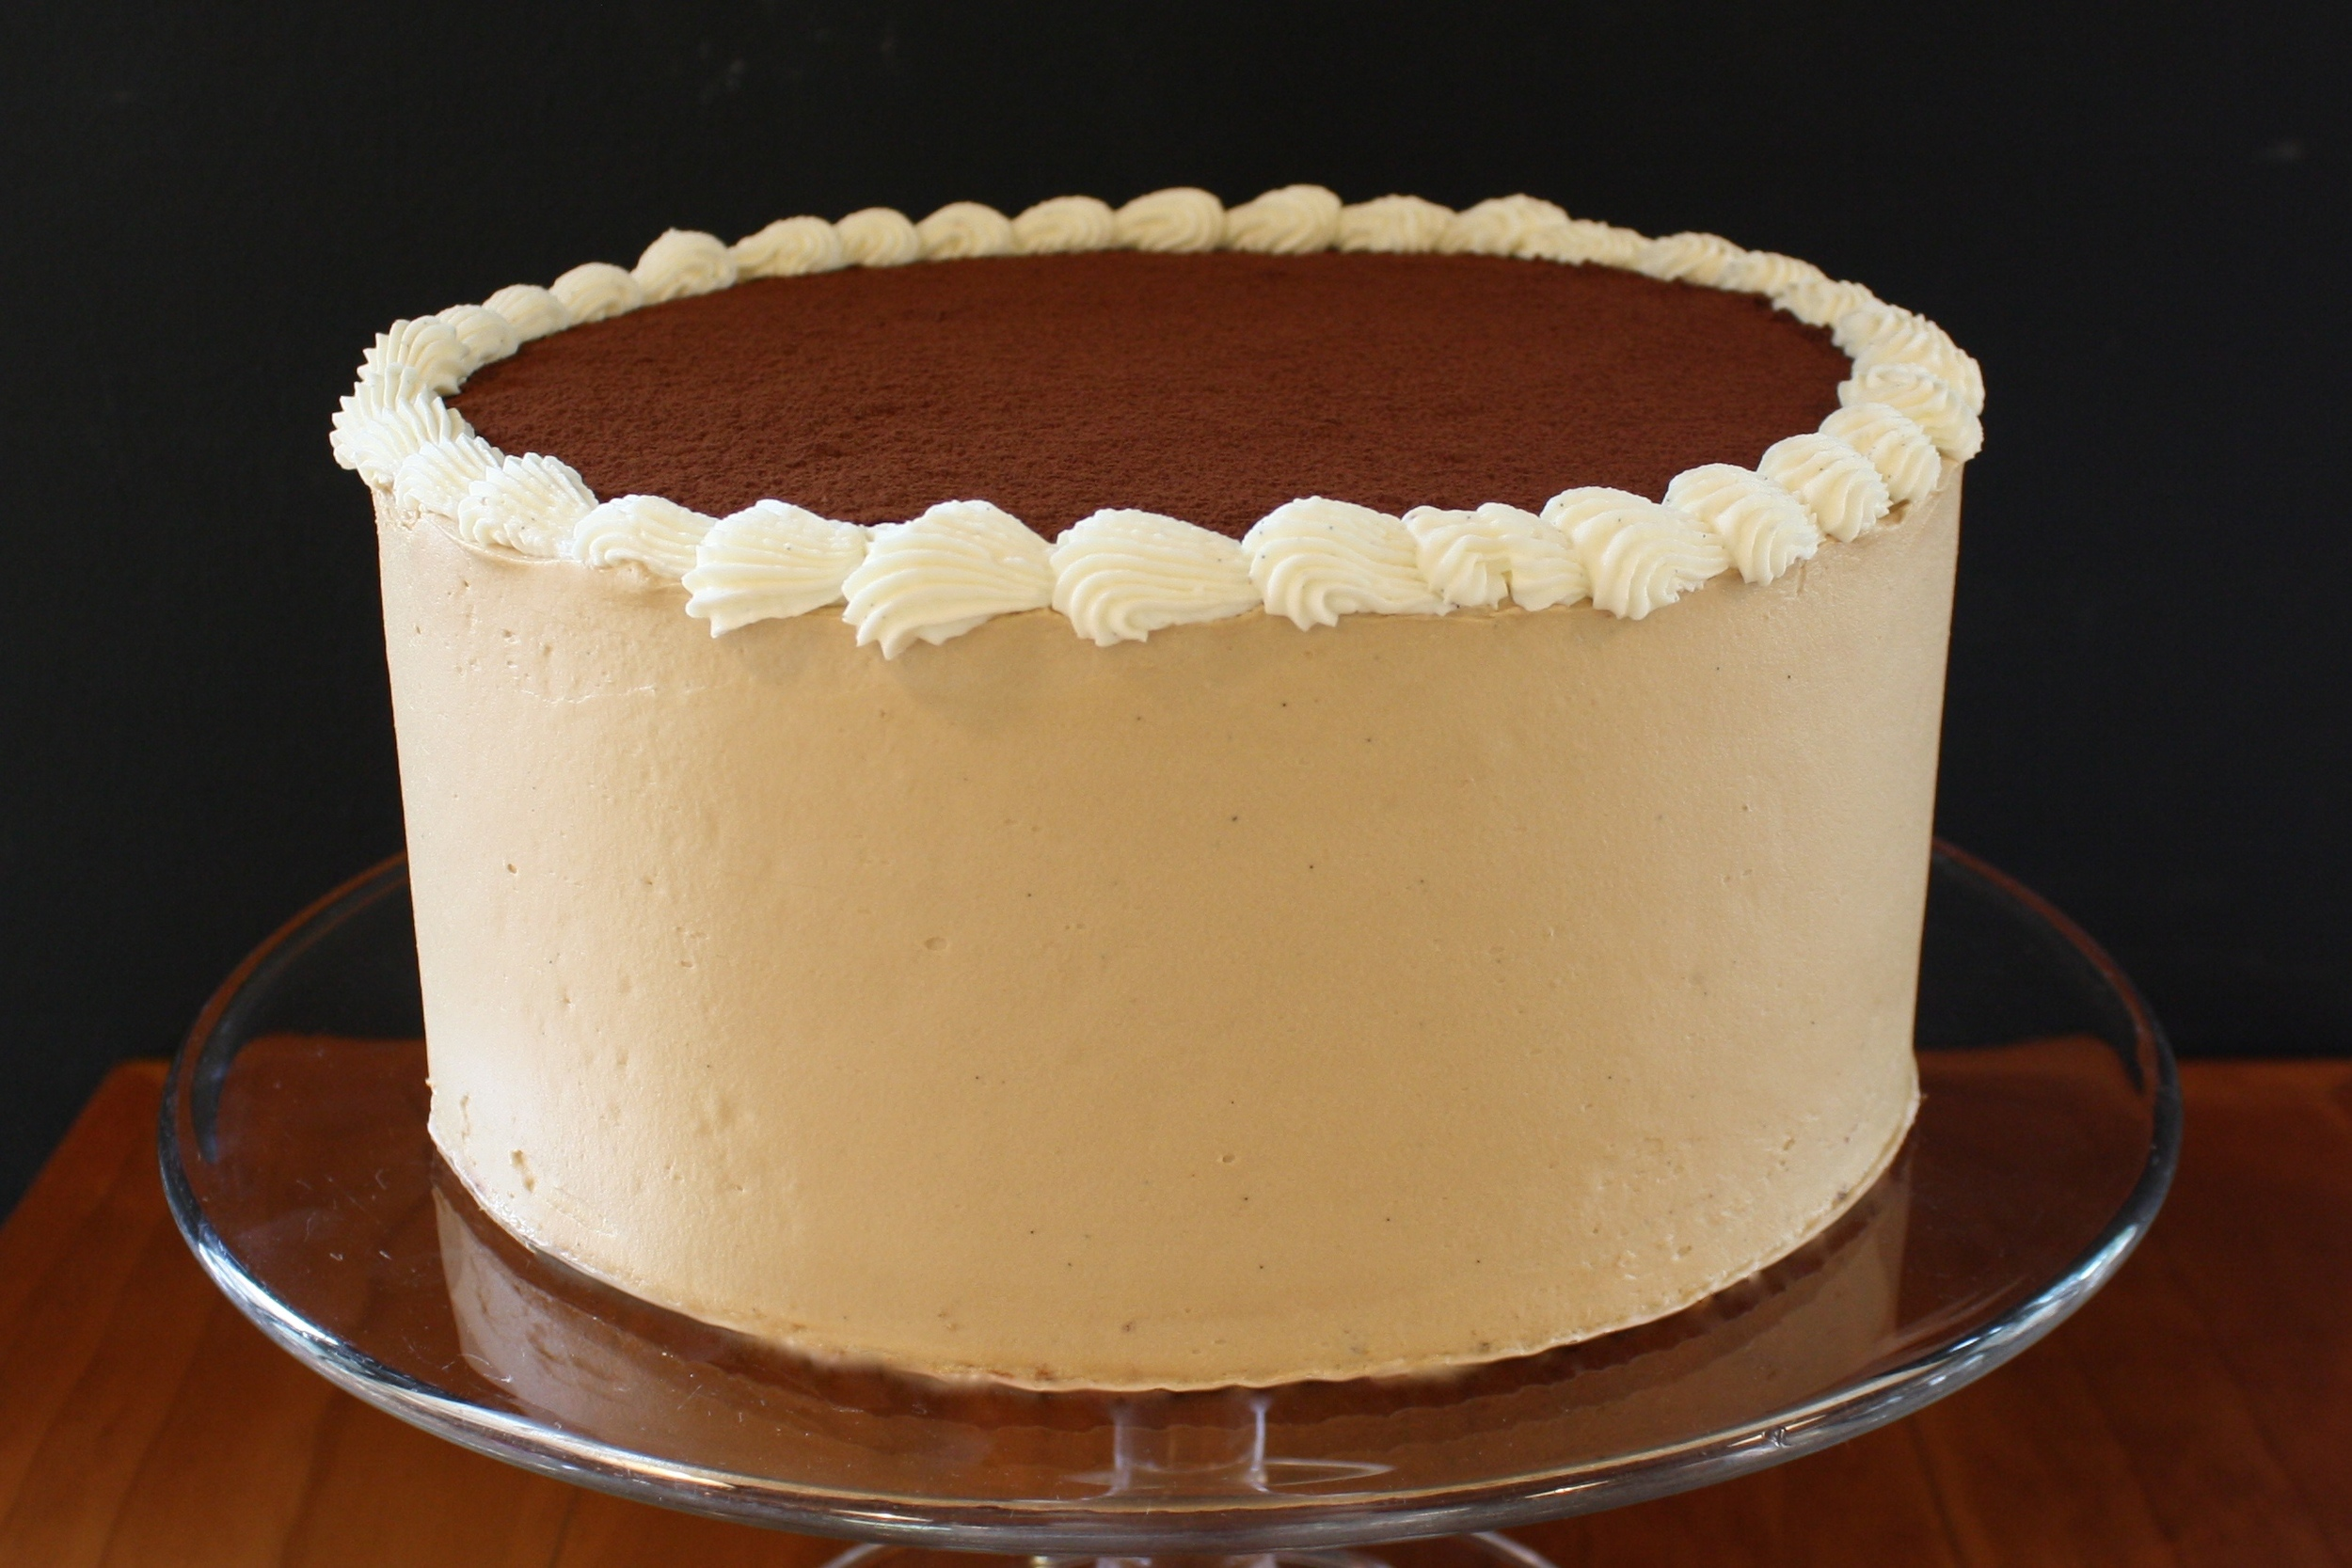 """TIramisu*  THE CLASSIC ITALIAN """"PICK-ME-UP"""" IN TRIPLE-LAYER CAKE FORM: VANILLA CAKE SOAKED IN ESPRESSO AND BRANDY, LAYERED WITH COCOA AND MASCARPONE FILLING, AND FINISHED WITH COFFEE ICING"""